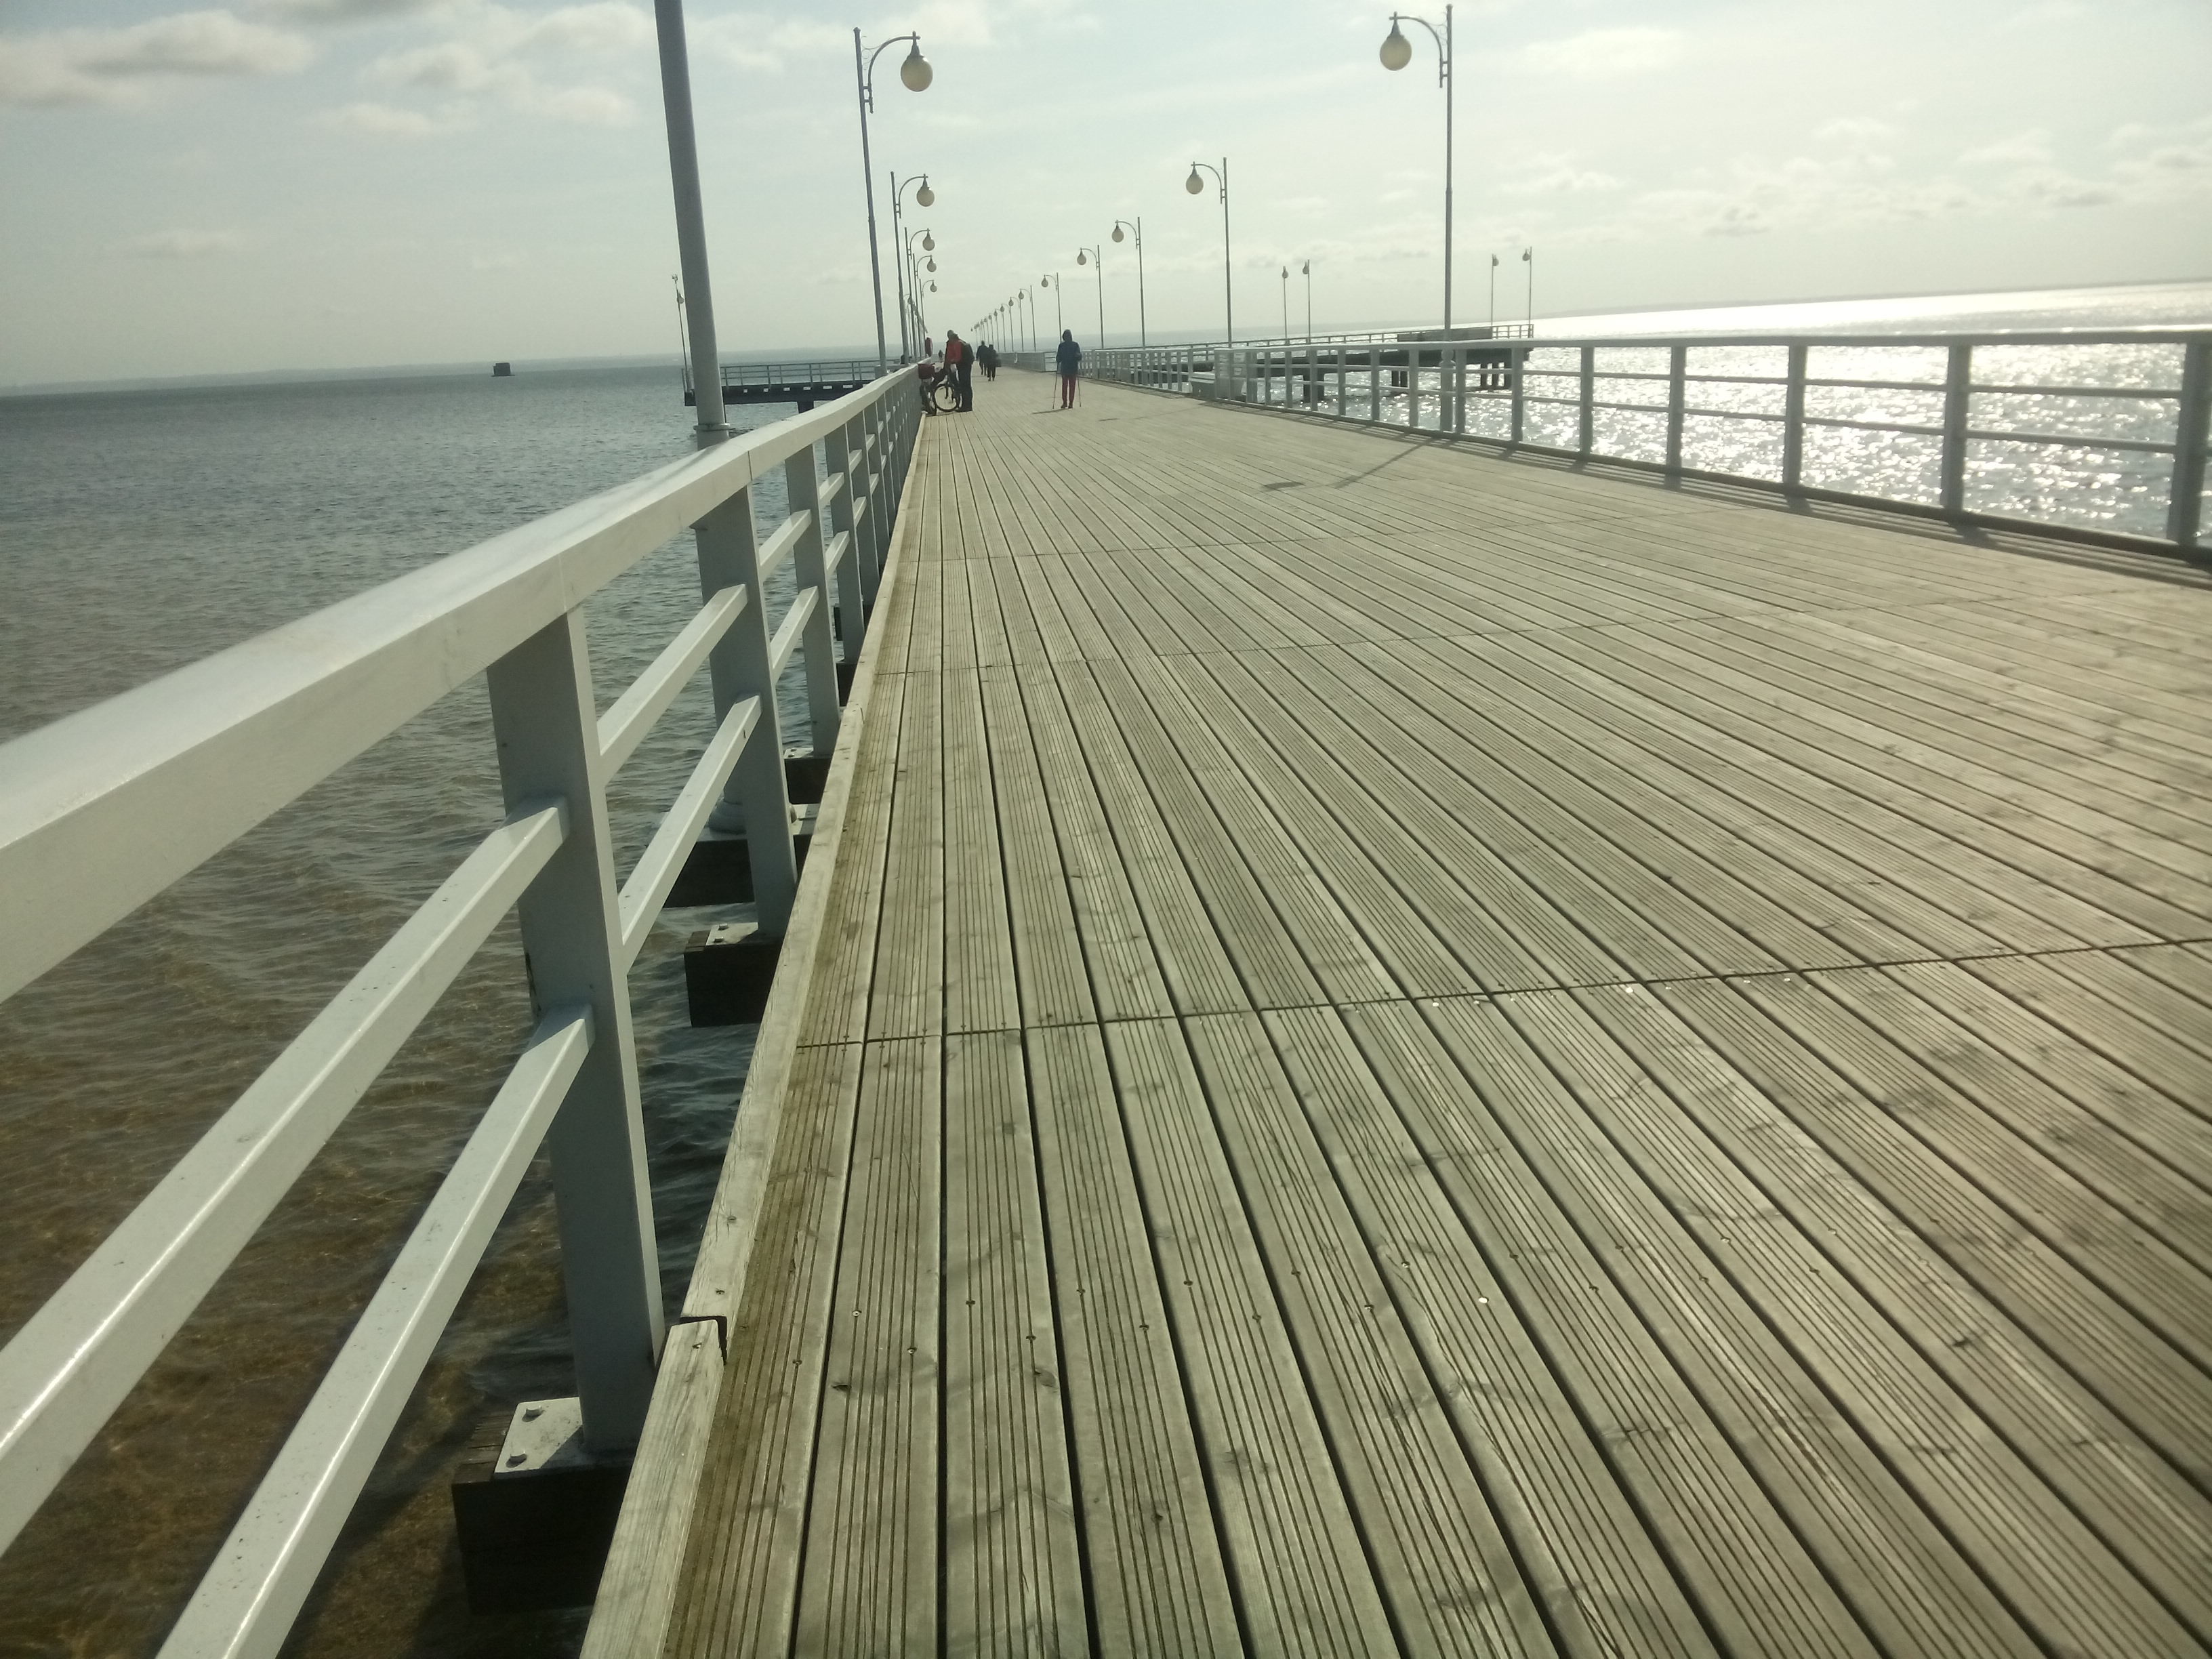 View down a wooden pier with white fences, to the sea